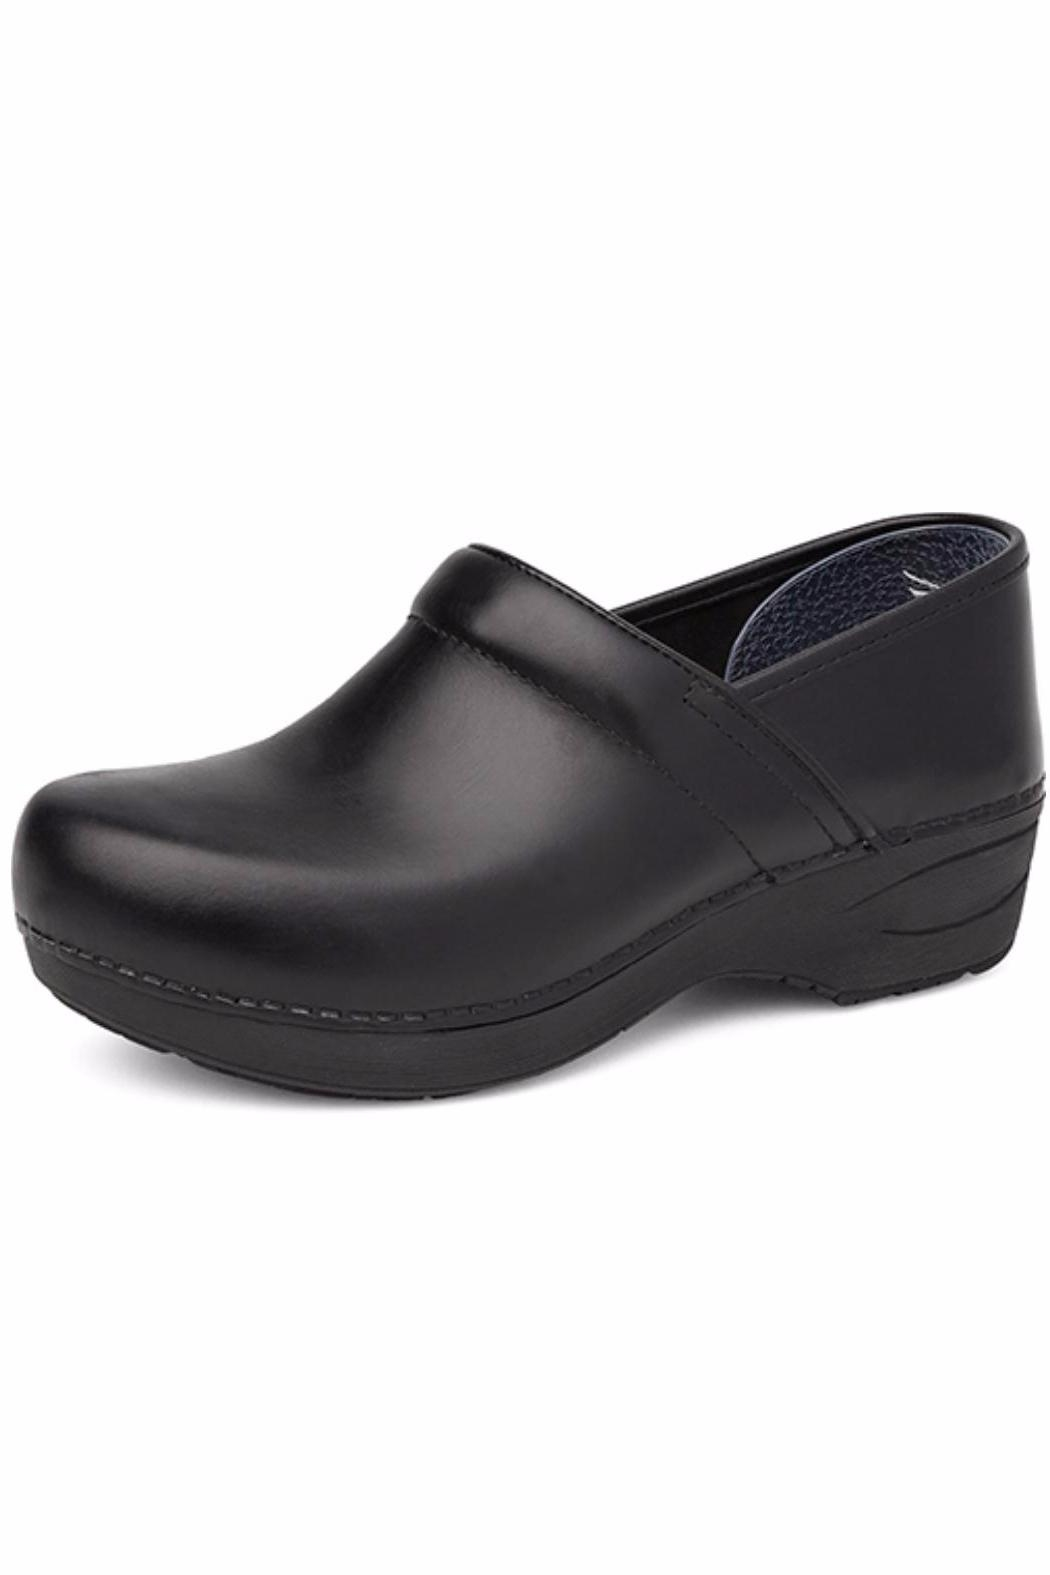 Dansko Black Pull Up Clog - Main Image